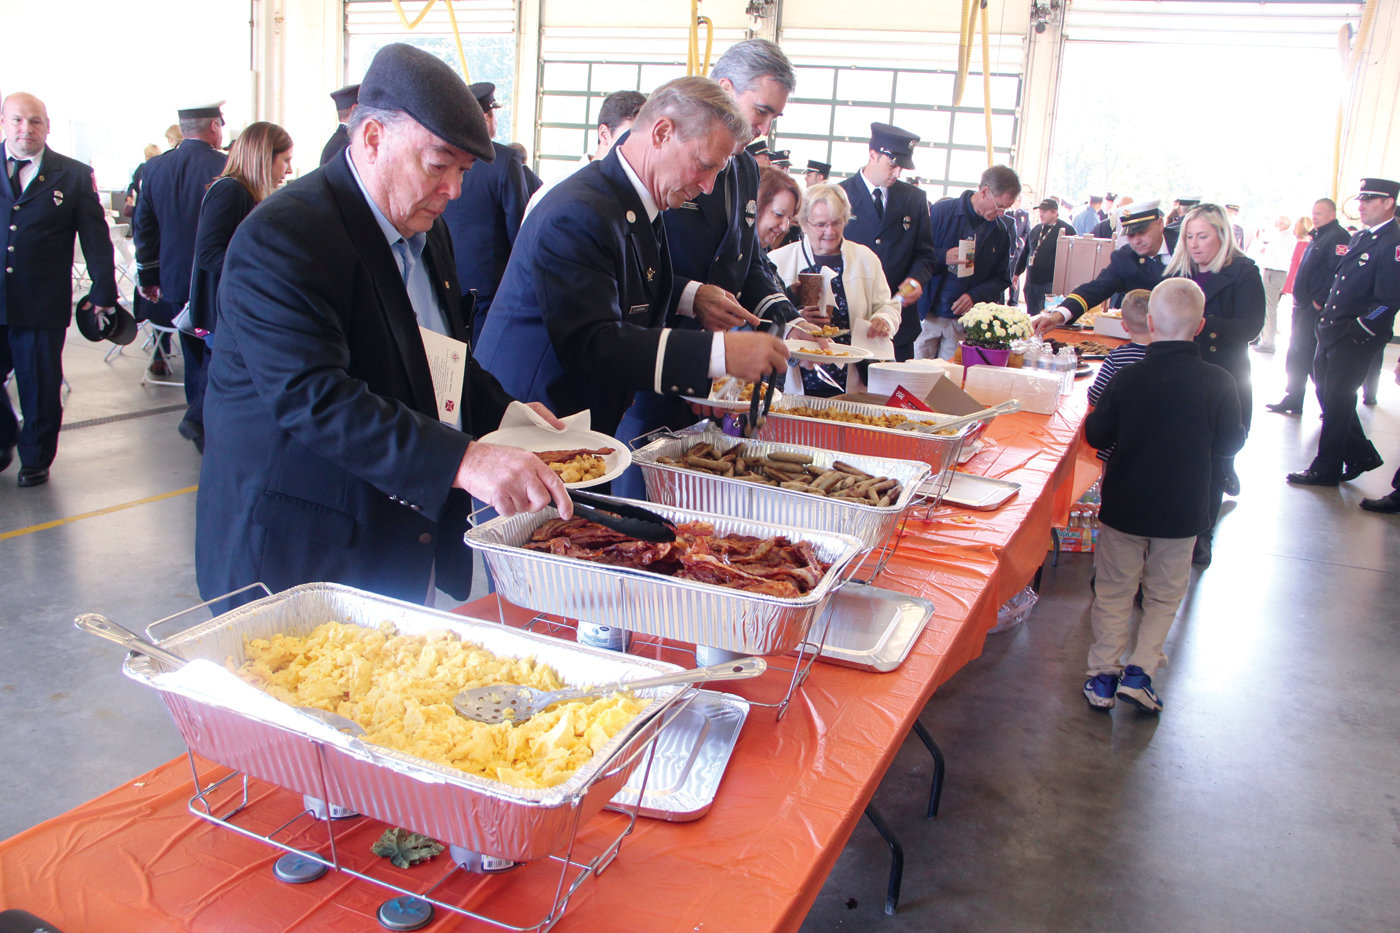 BREAKFAST LINE: Those attending the ceremony were treated to breakfast that was served on the floor of Station One in Apponaug.